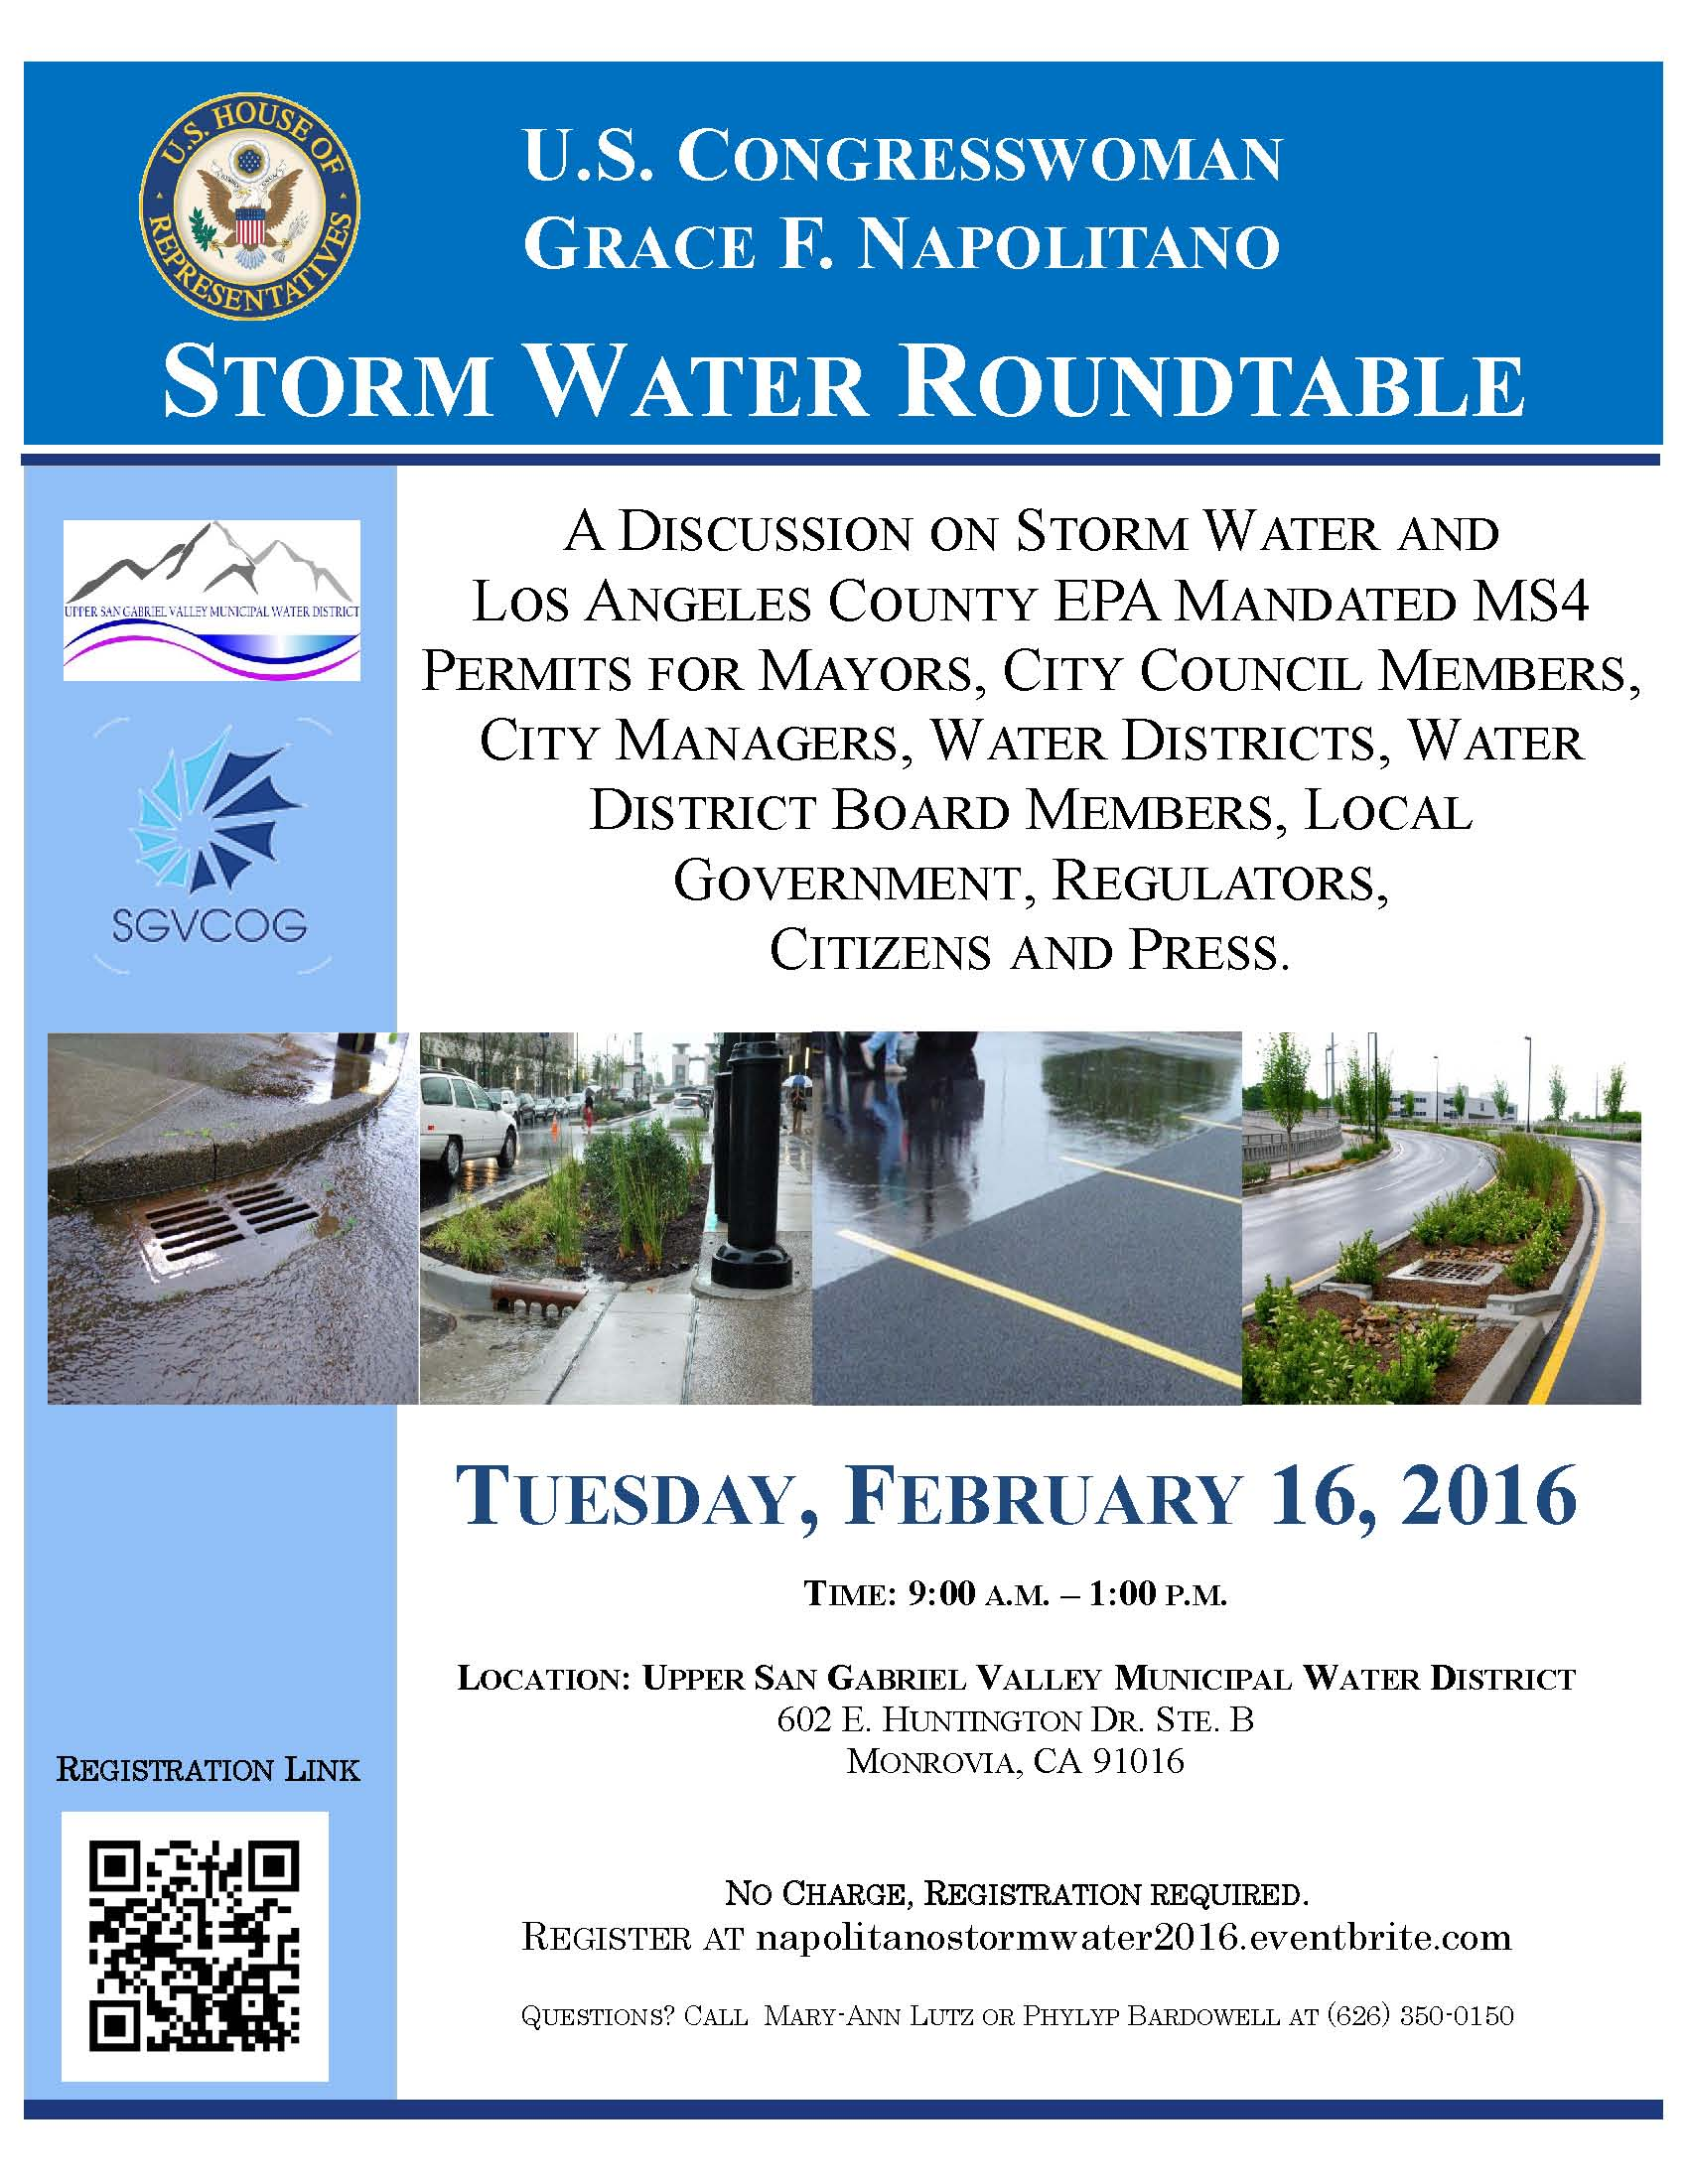 Storm_Water_Roundtable_2016.jpg